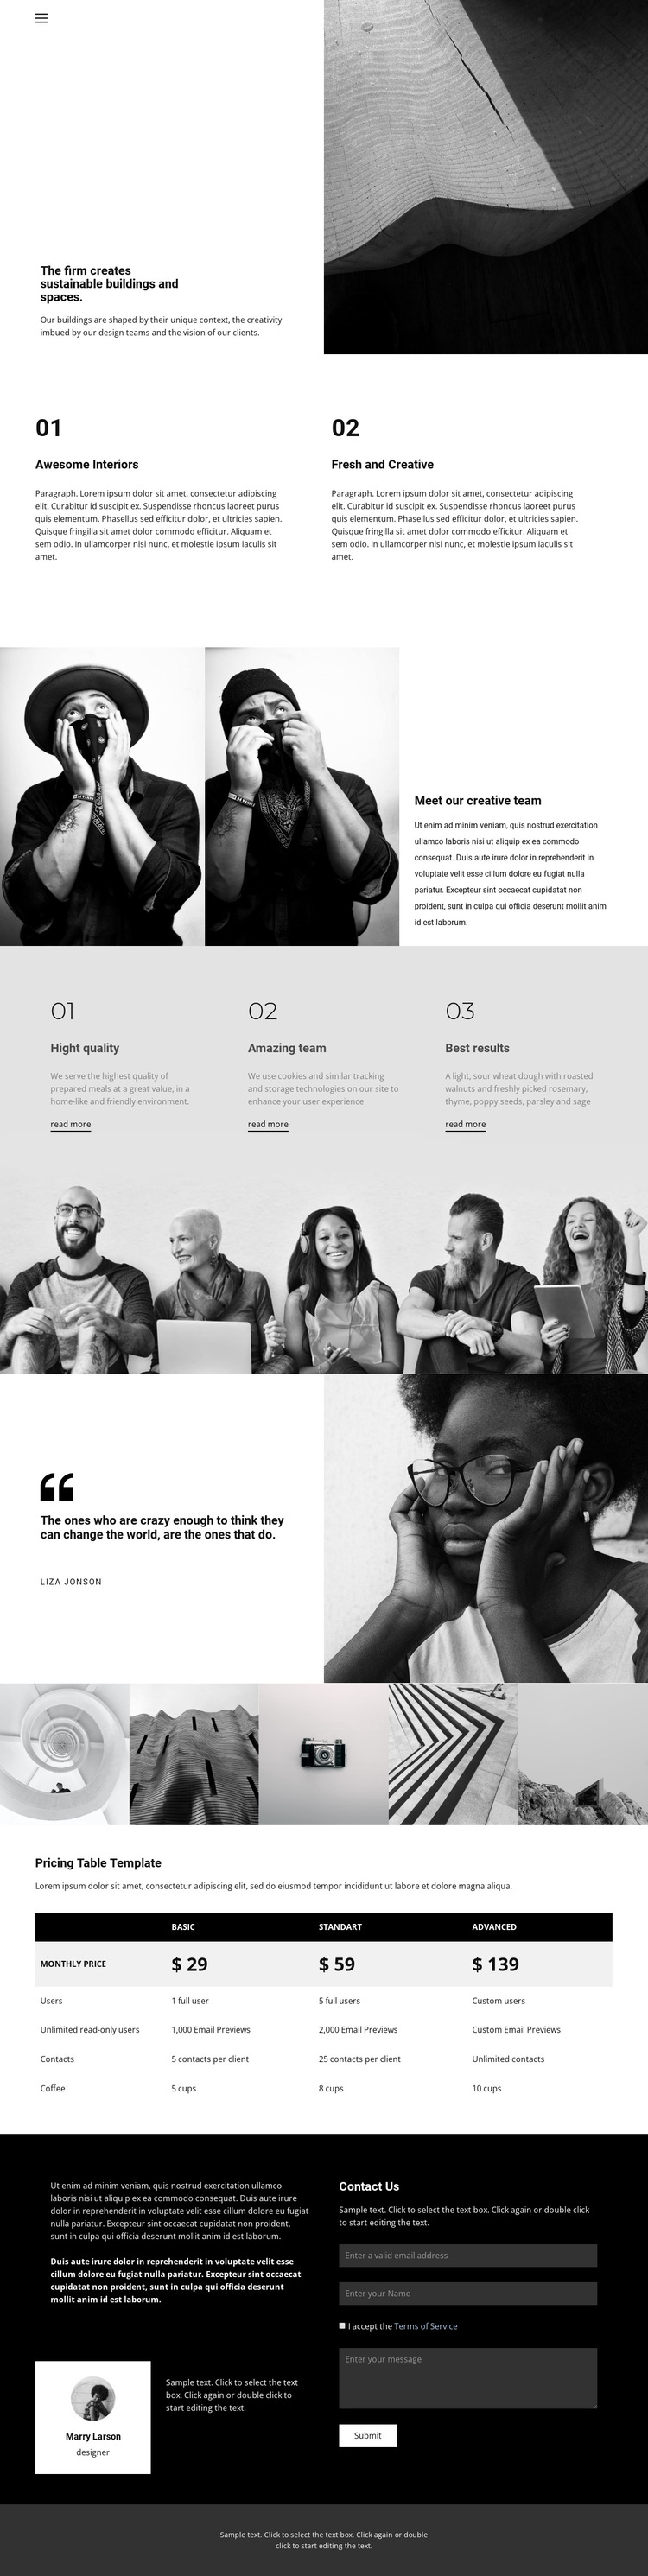 We creates sustainable buildings HTML5 Template